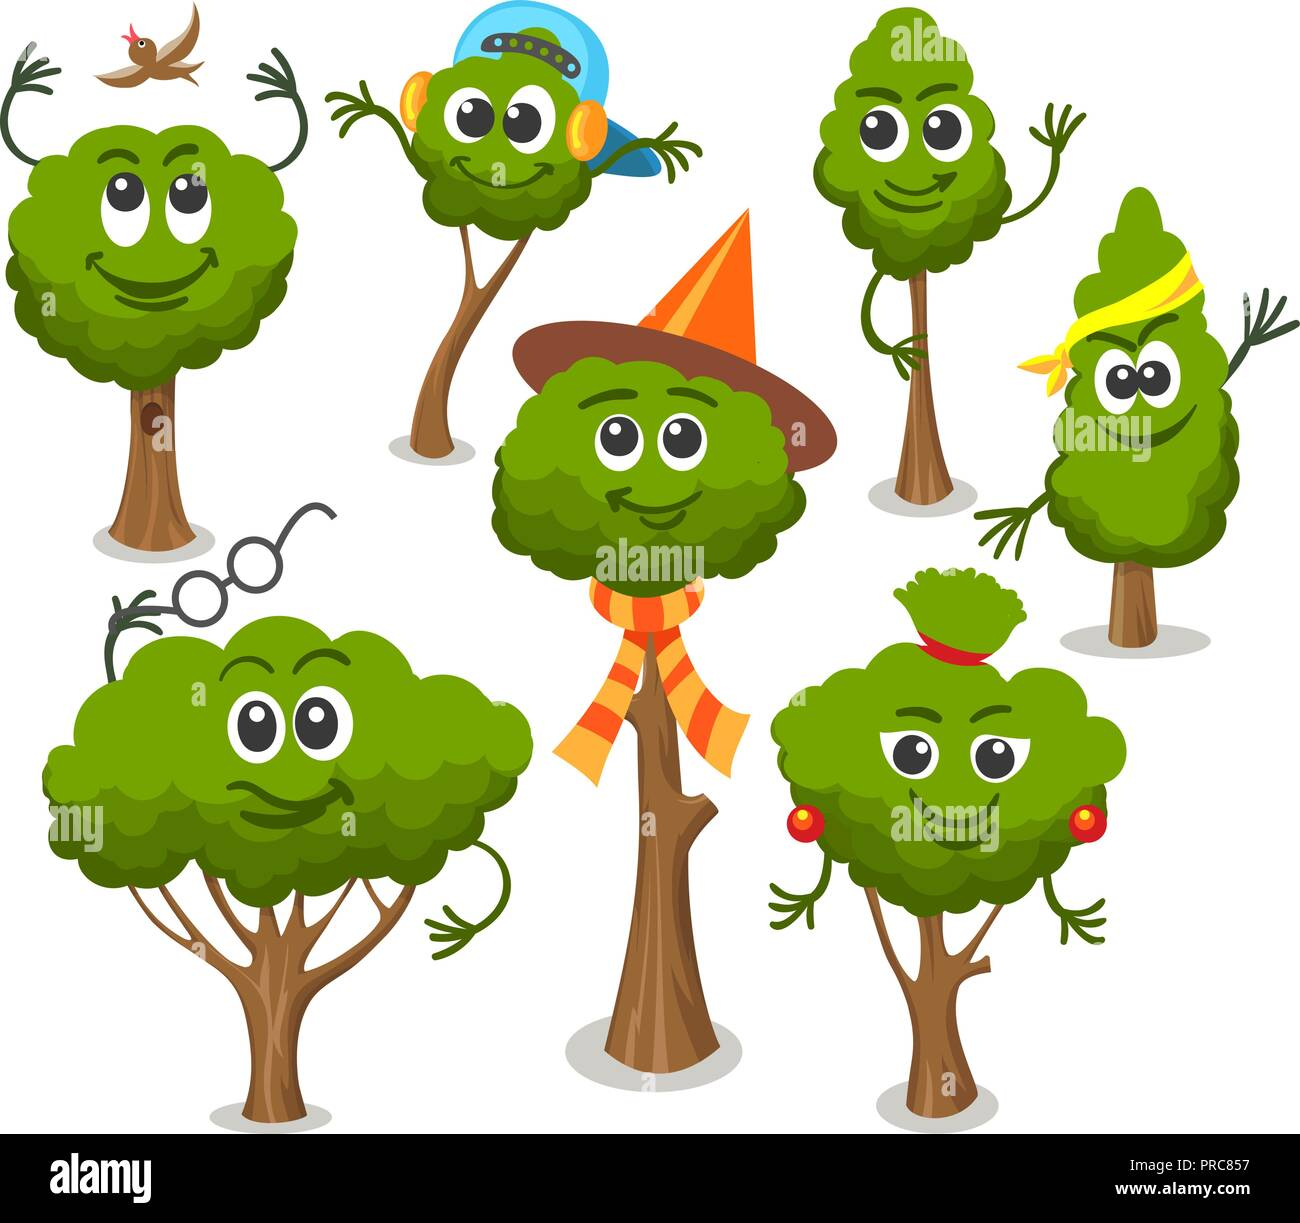 Cute Trees With Faces Funny Smiling Tree And Bush Set Isolated On White Background Vector Cartoon Fairytale Plants Characters Stock Vector Image Art Alamy You can even create your own characters and start drawing a comic strip or work on animating a short film! https www alamy com cute trees with faces funny smiling tree and bush set isolated on white background vector cartoon fairytale plants characters image220931347 html